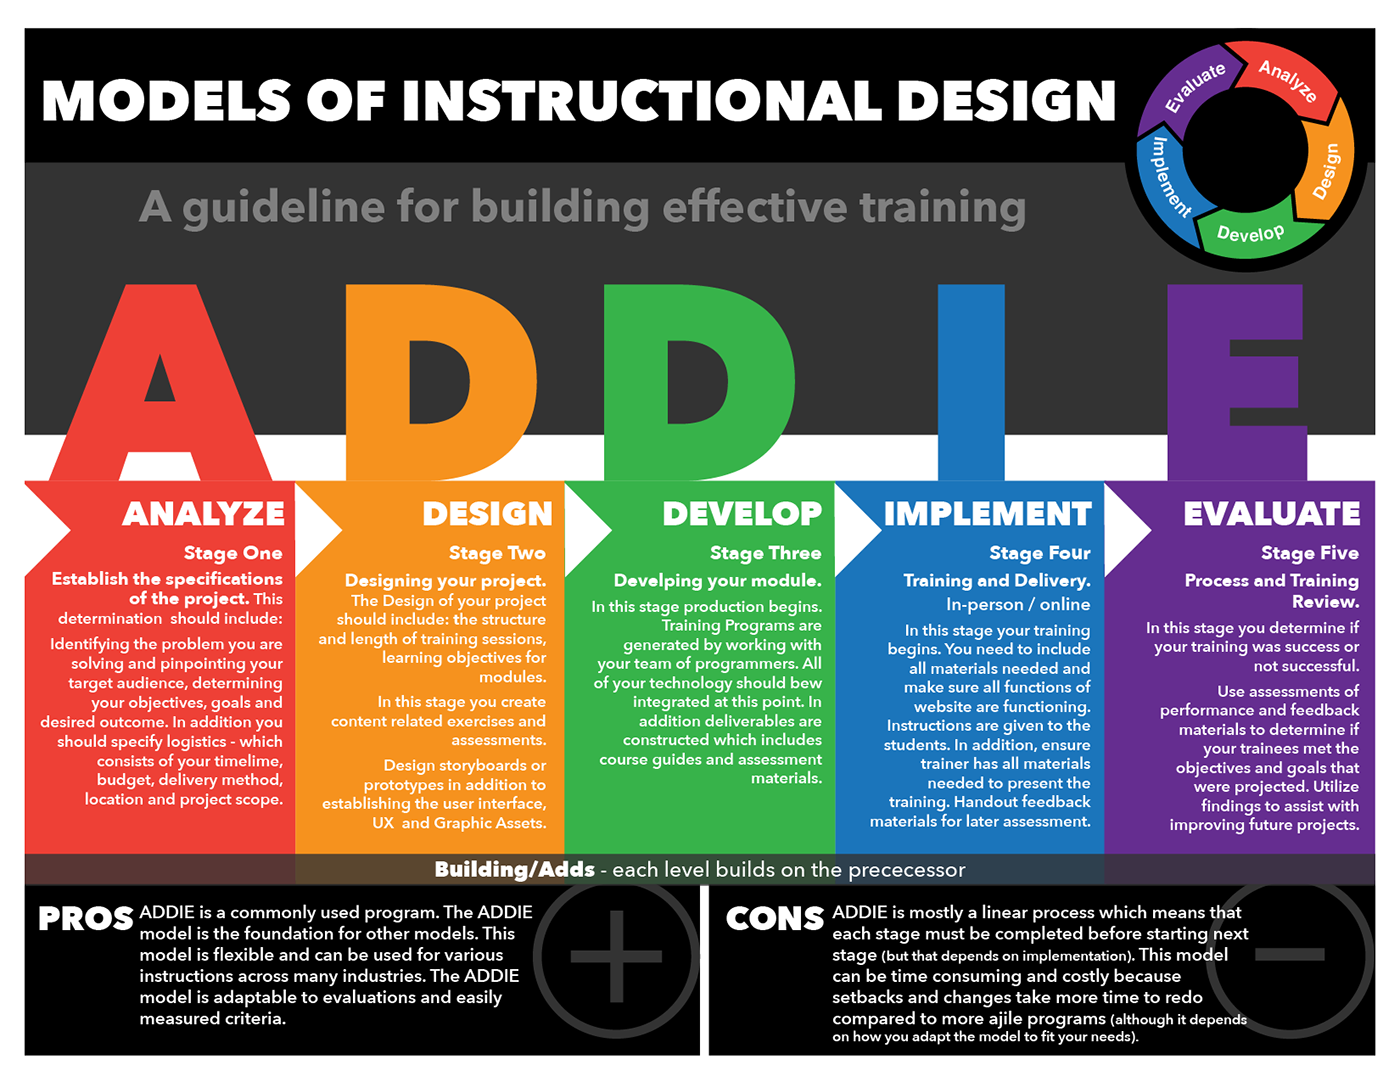 Models Of Instructional Design Posters Part I On Behance